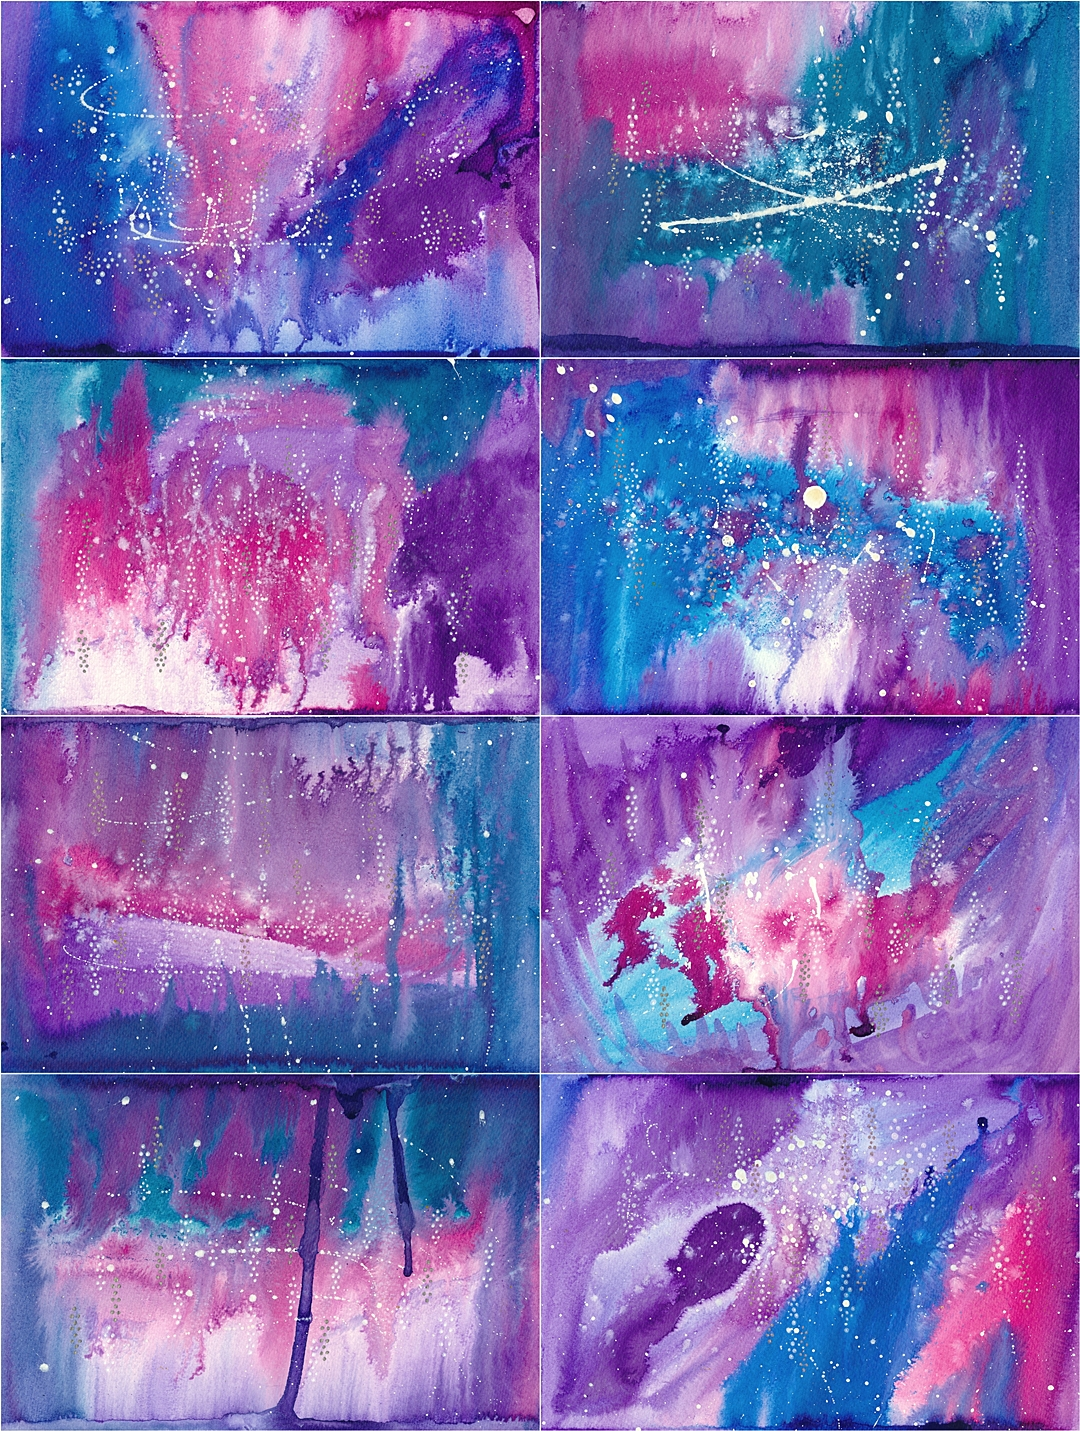 Blue/purple backgrounds, done with ink, they are 18x24cm in size.